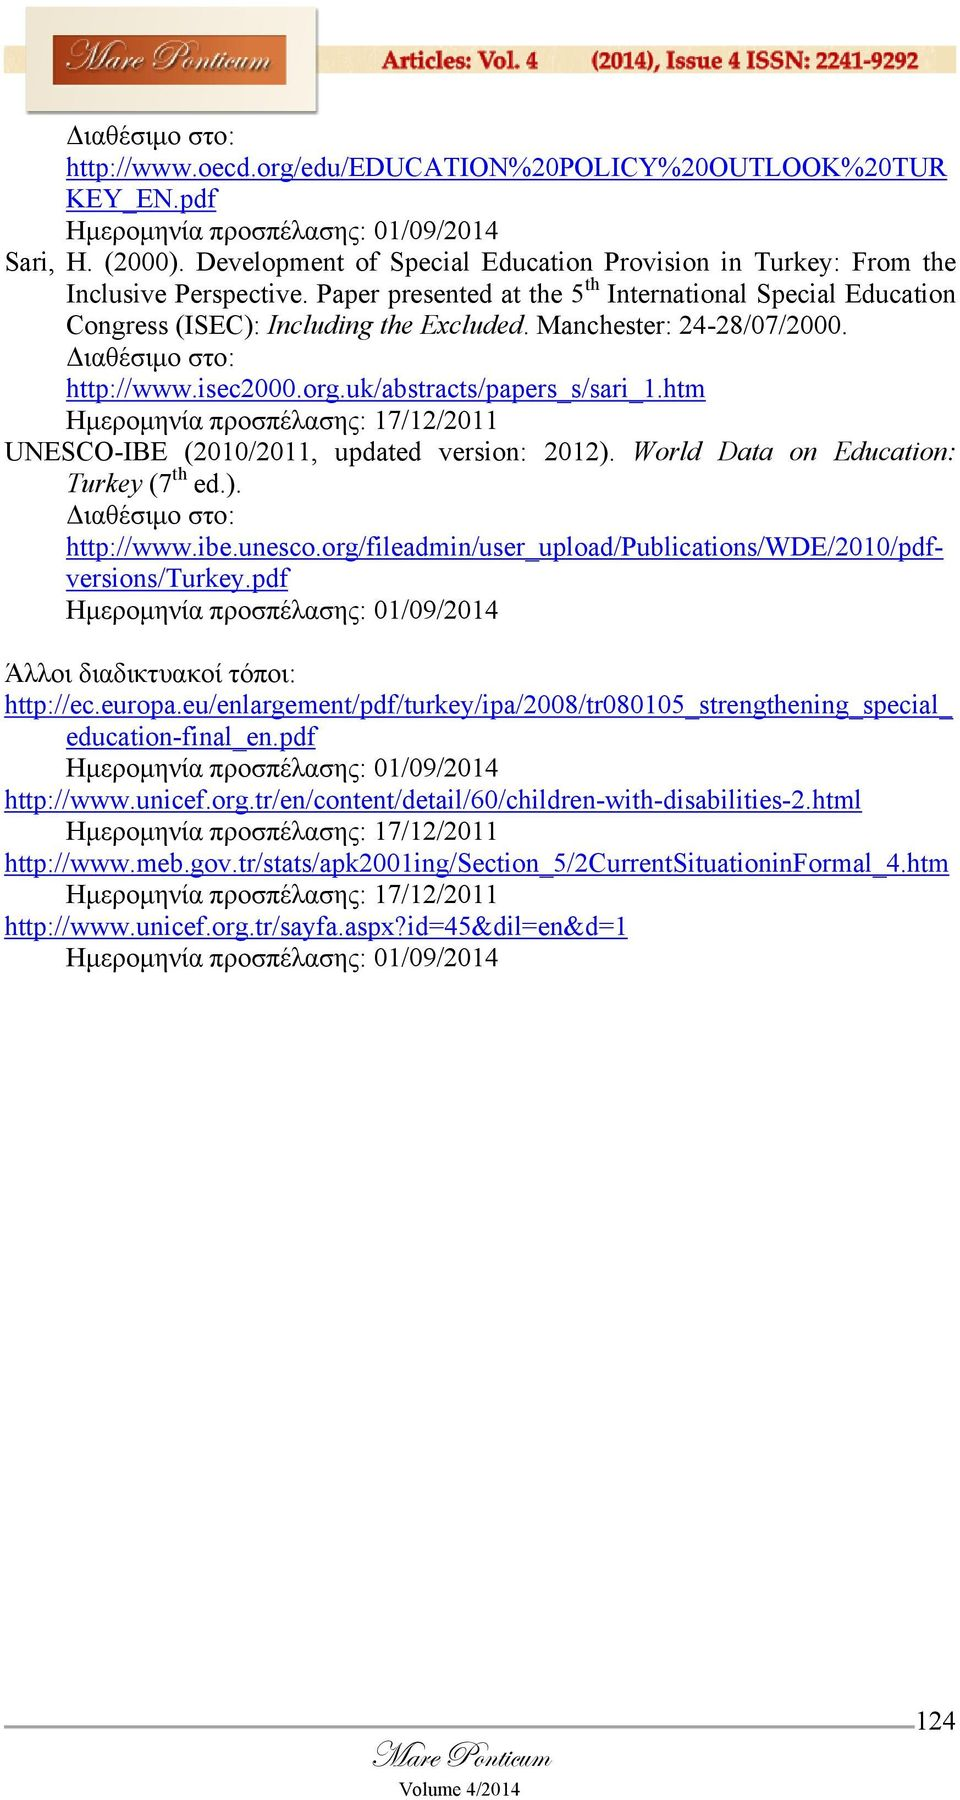 htm Ημερομηνία προσπέλασης: 17/12/2011 UNESCO-IBE (2010/2011, updated version: 2012). World Data on Education: Turkey (7 th ed.). http://www.ibe.unesco.